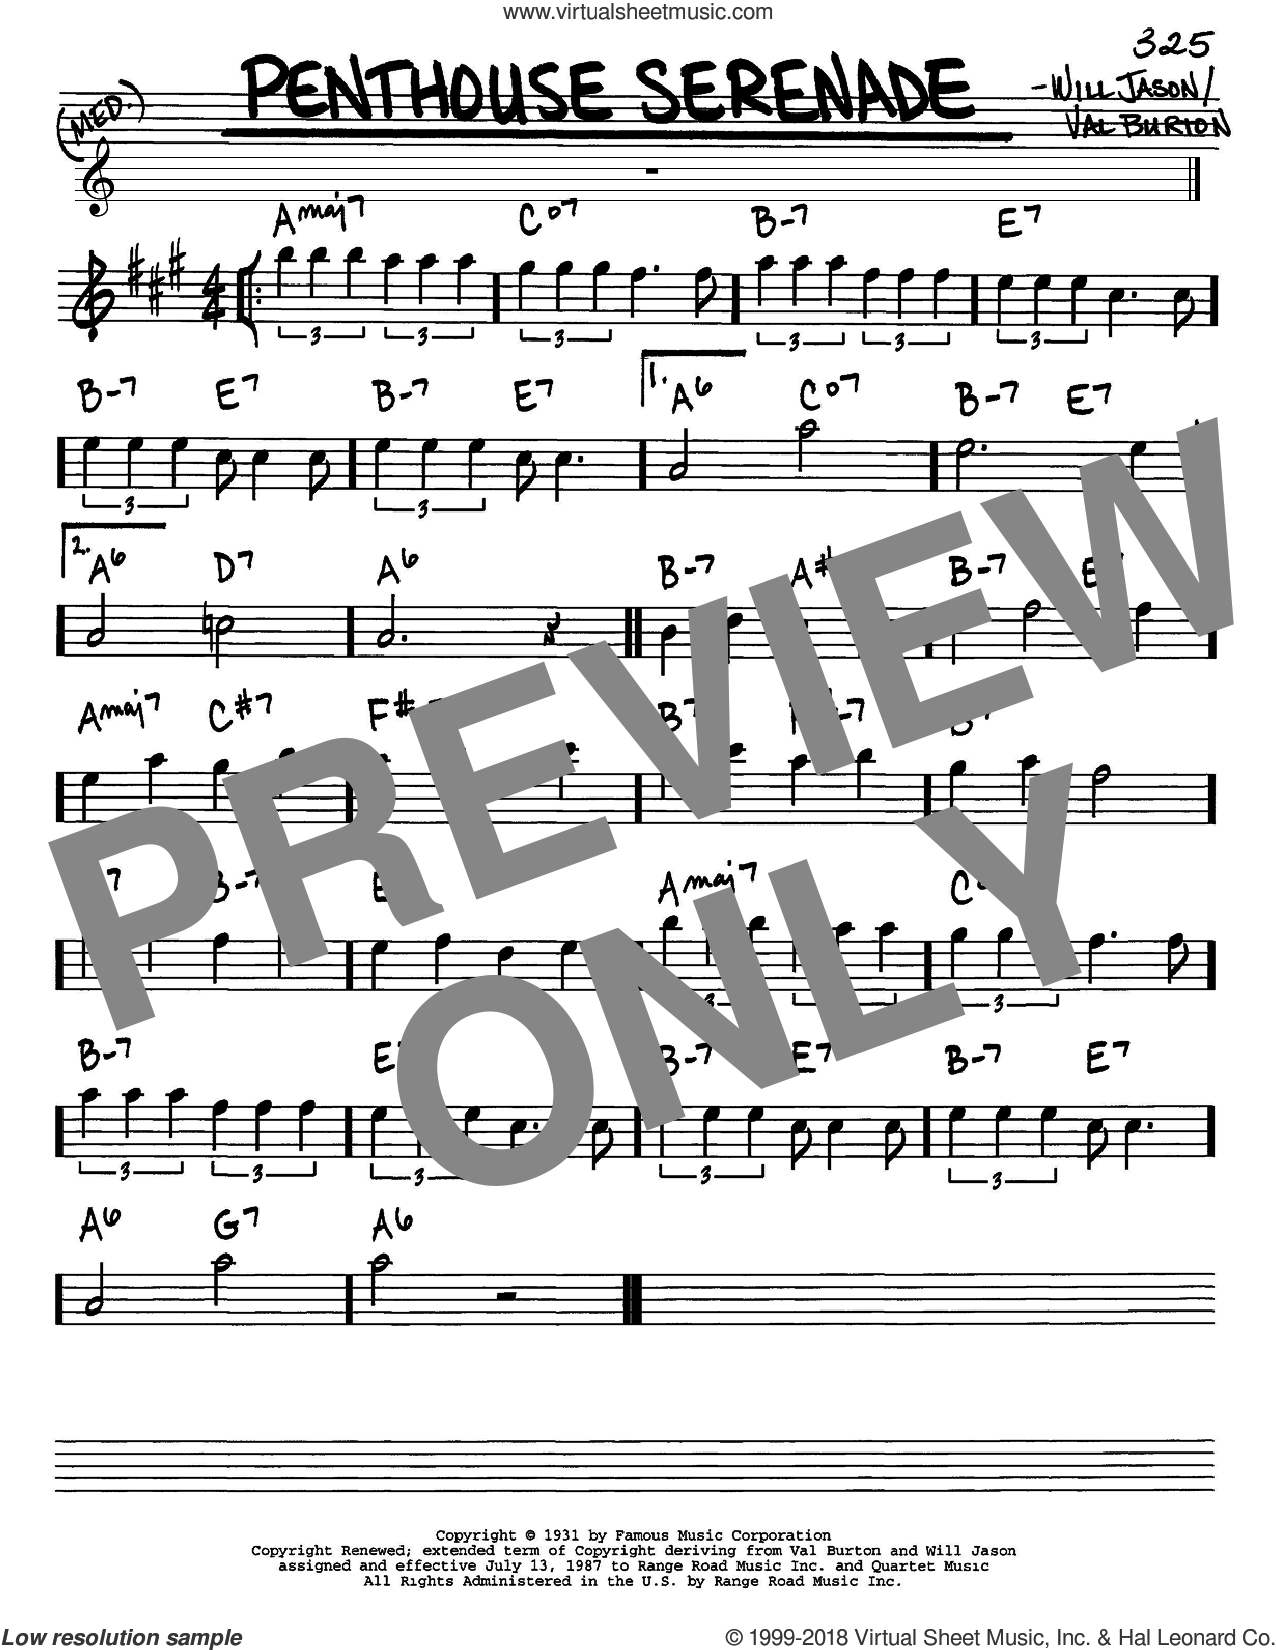 Penthouse Serenade sheet music for voice and other instruments (in Eb) by Nat King Cole, Val Burton and Will Jason, intermediate skill level